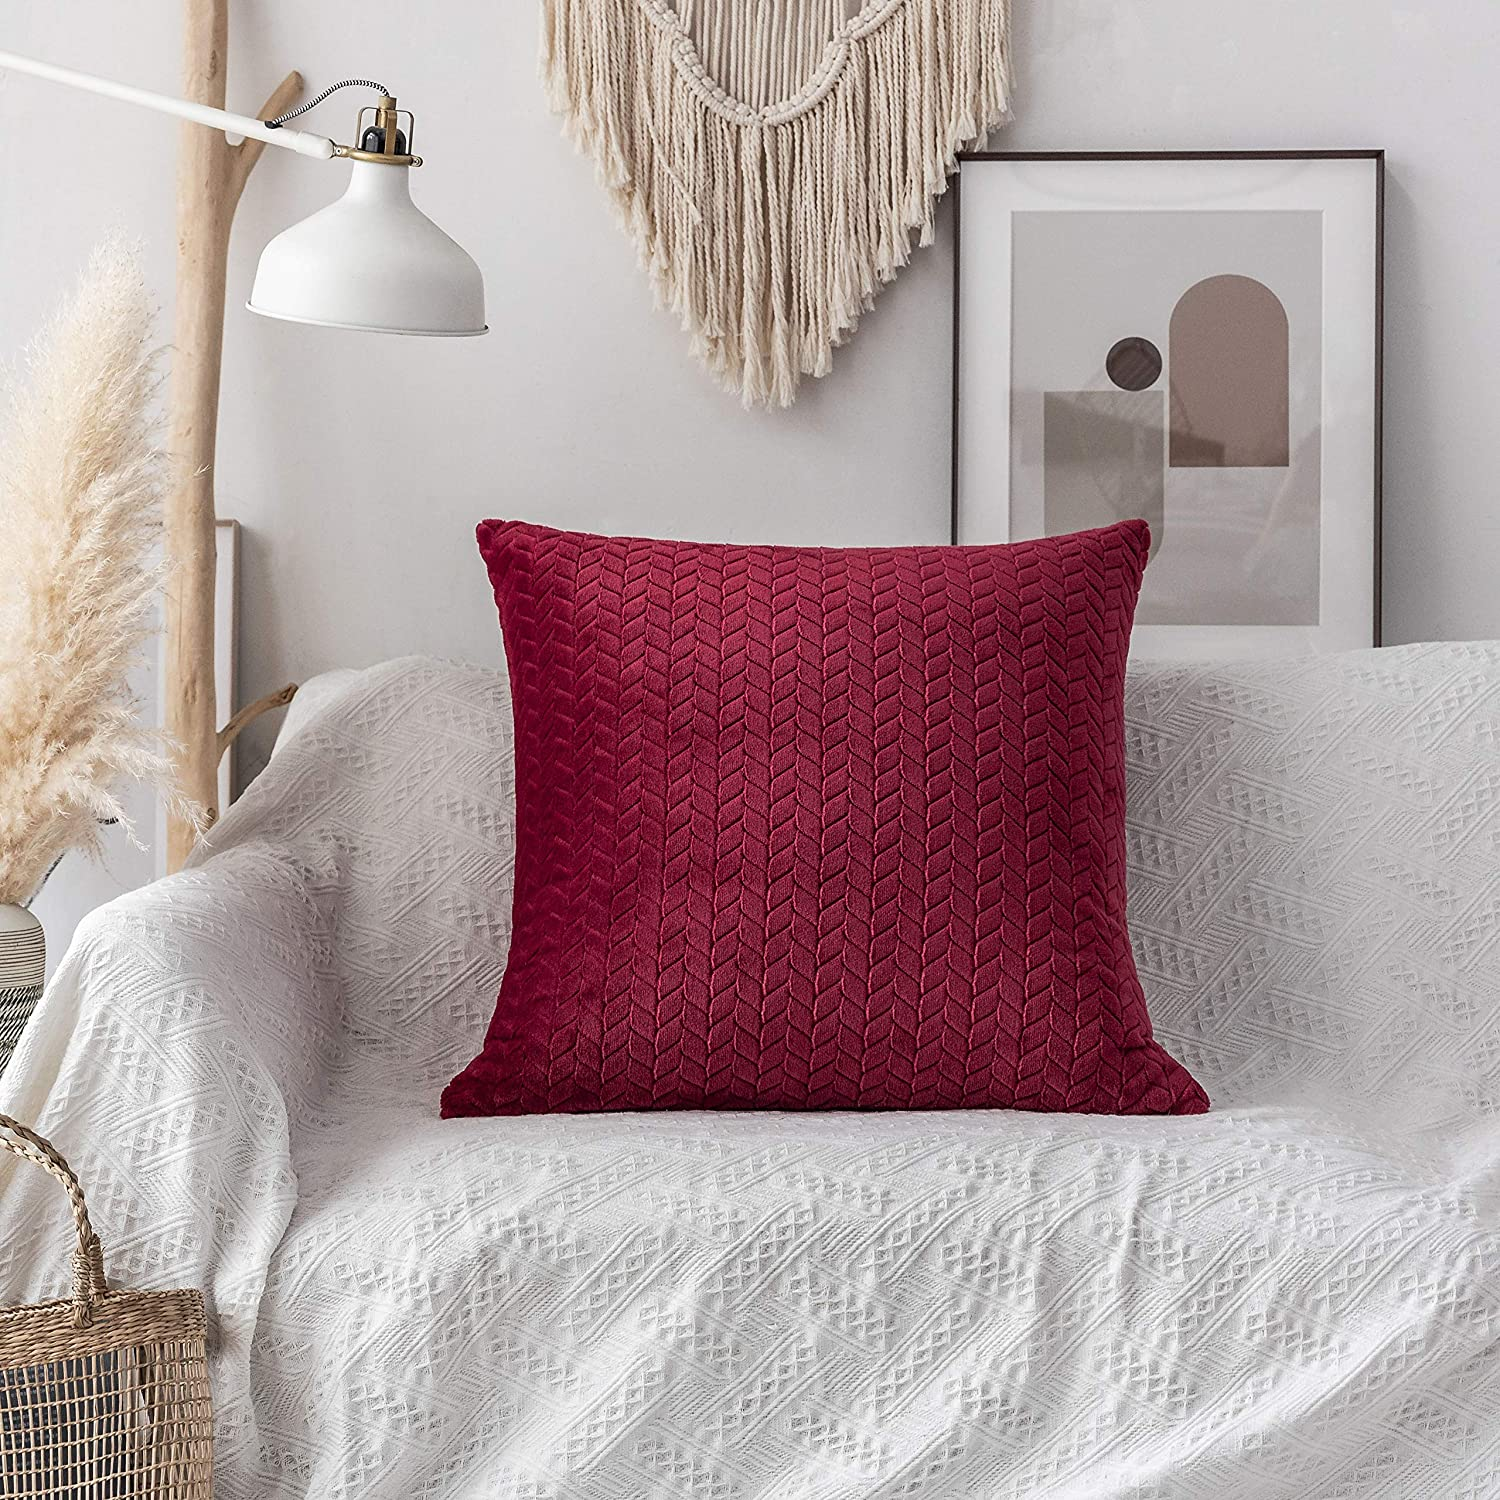 Amazon Com Ugasa Large Euro Throw Pillow Cover Cable Knit Sweater 100 Flannel Decorative Square Cushion Pillowcases 1 Pack 24 X24 Burgundy Home Kitchen